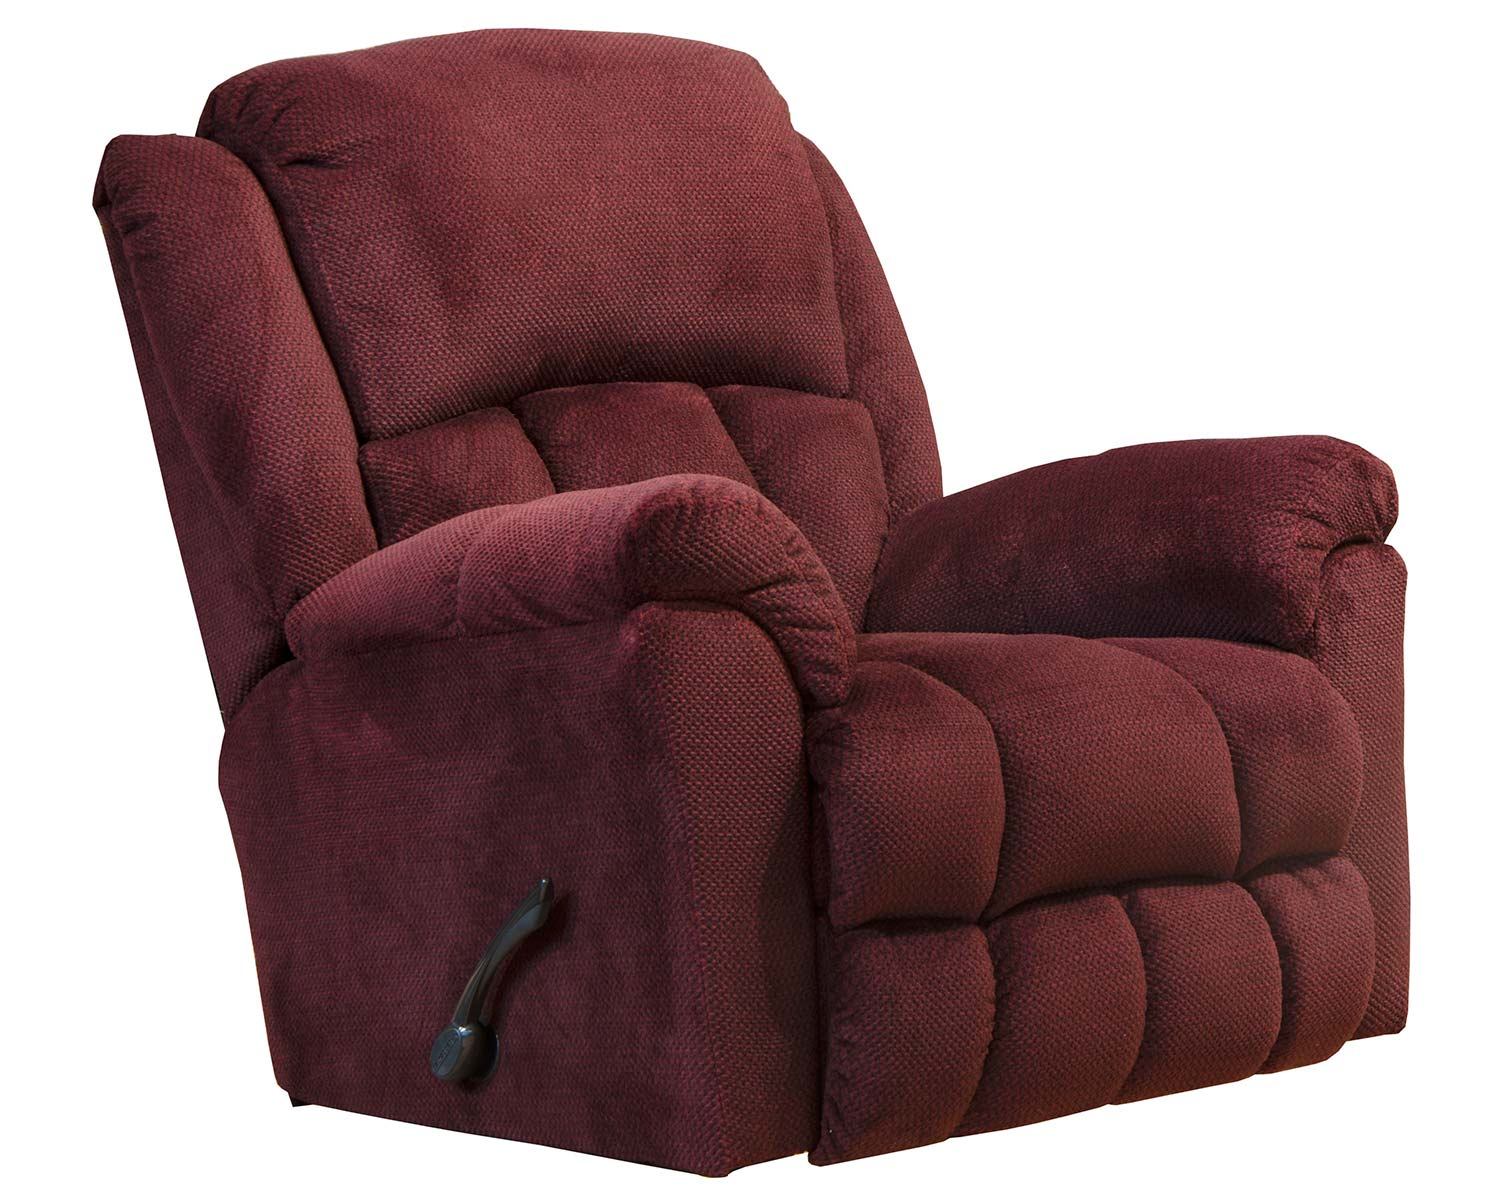 CatNapper Bingham Rocker Recliner Chair - Cinnabar